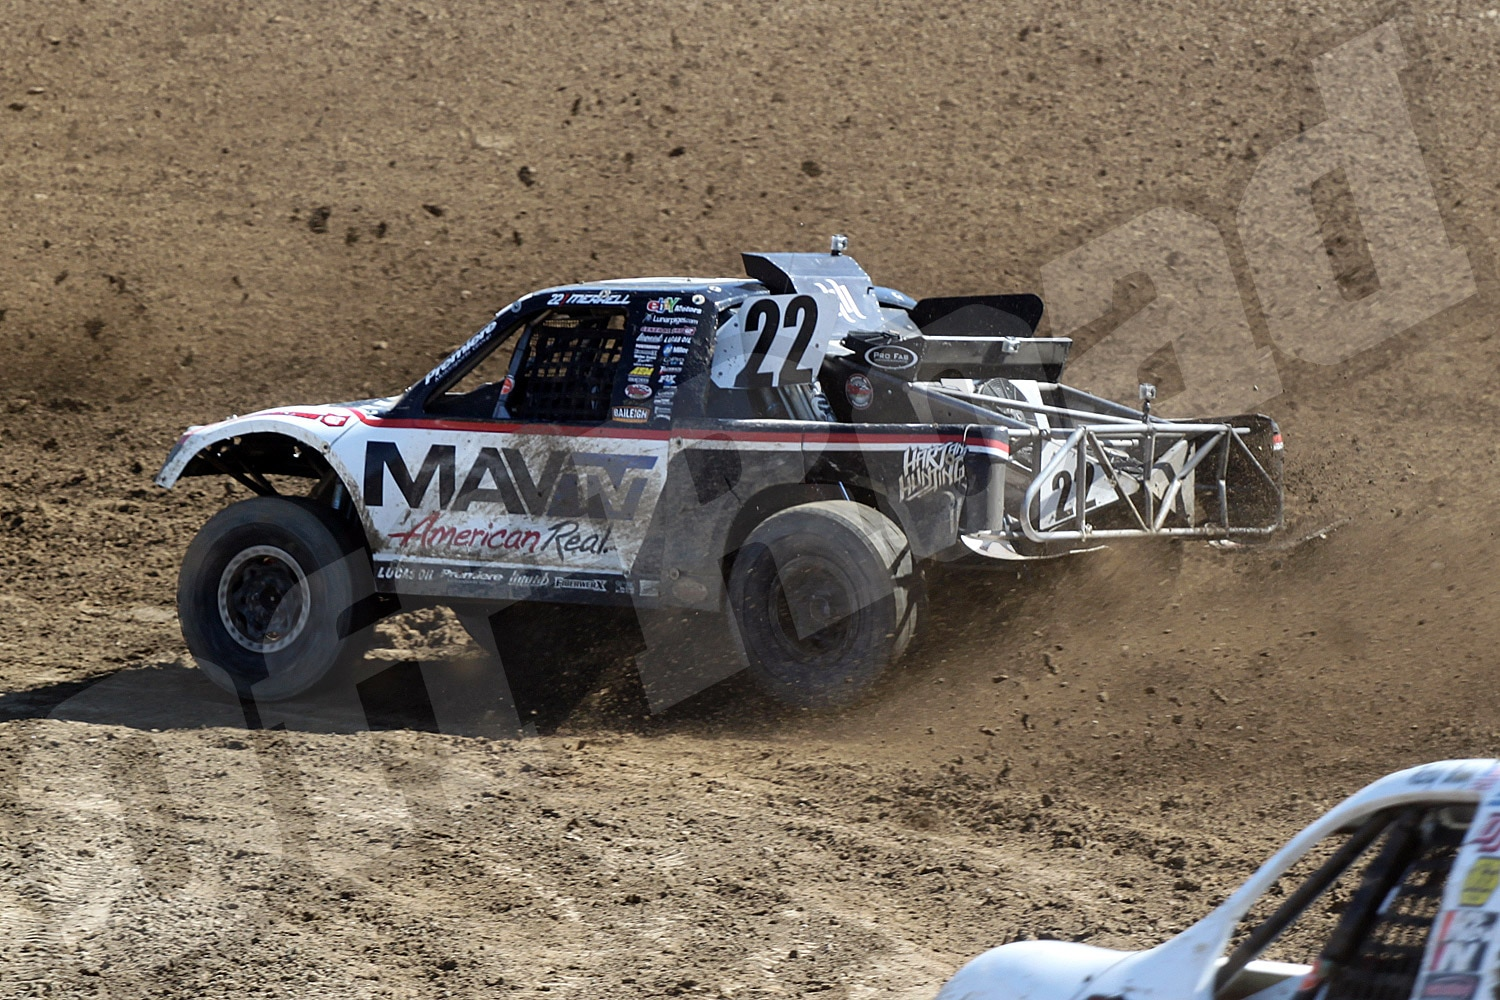 050312or 7553+2012 lucas oil off road racing series round 3+pro 4